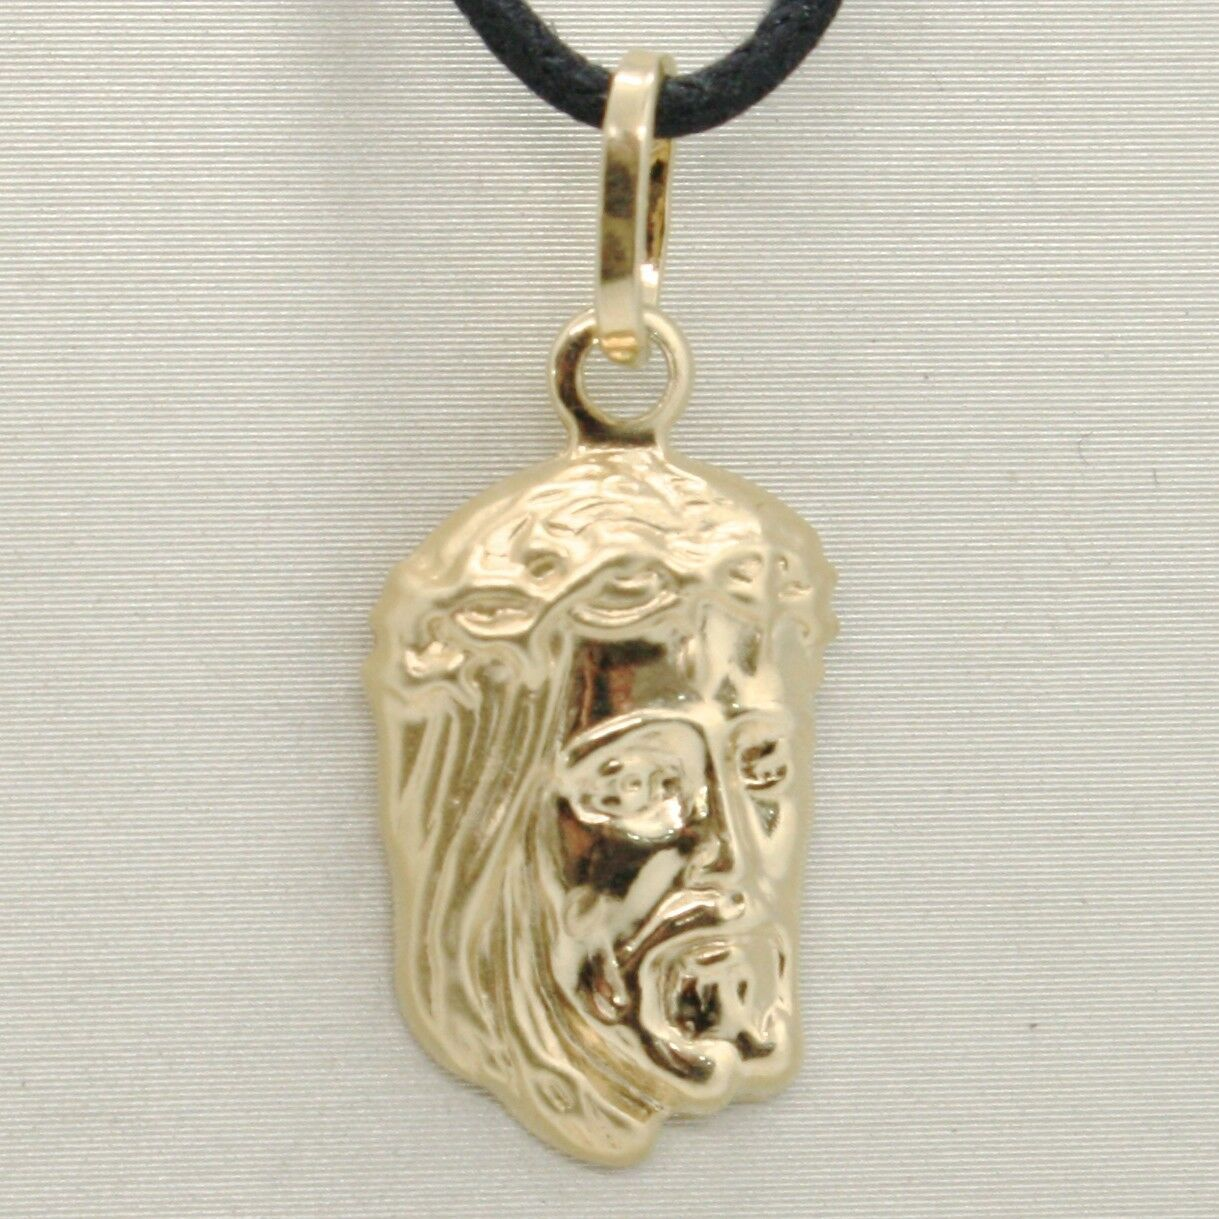 18K YELLOW GOLD JESUS FACE PENDANT CHARM 25 MM, 1 INCH, FINELY WORKED ITALY MADE